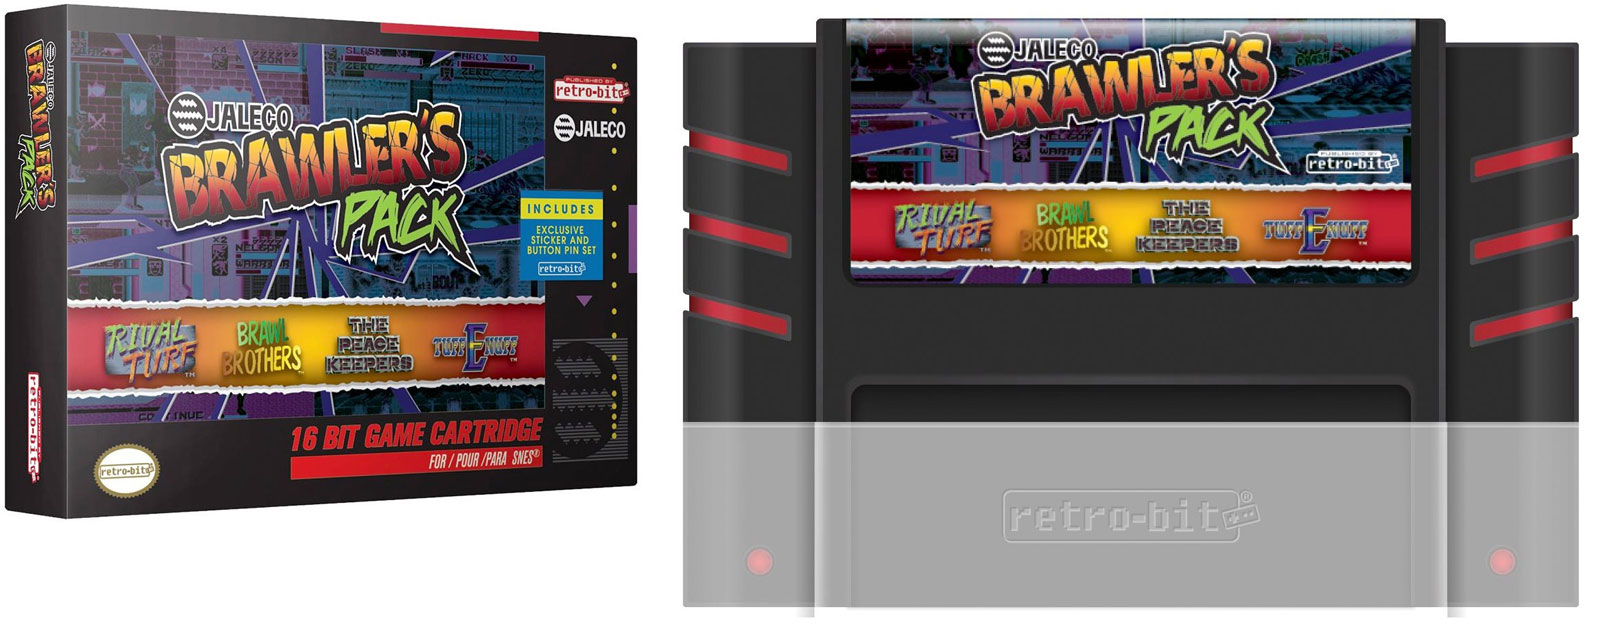 Retro-Bit's multigame collections: Jaleco Brawler's Pack